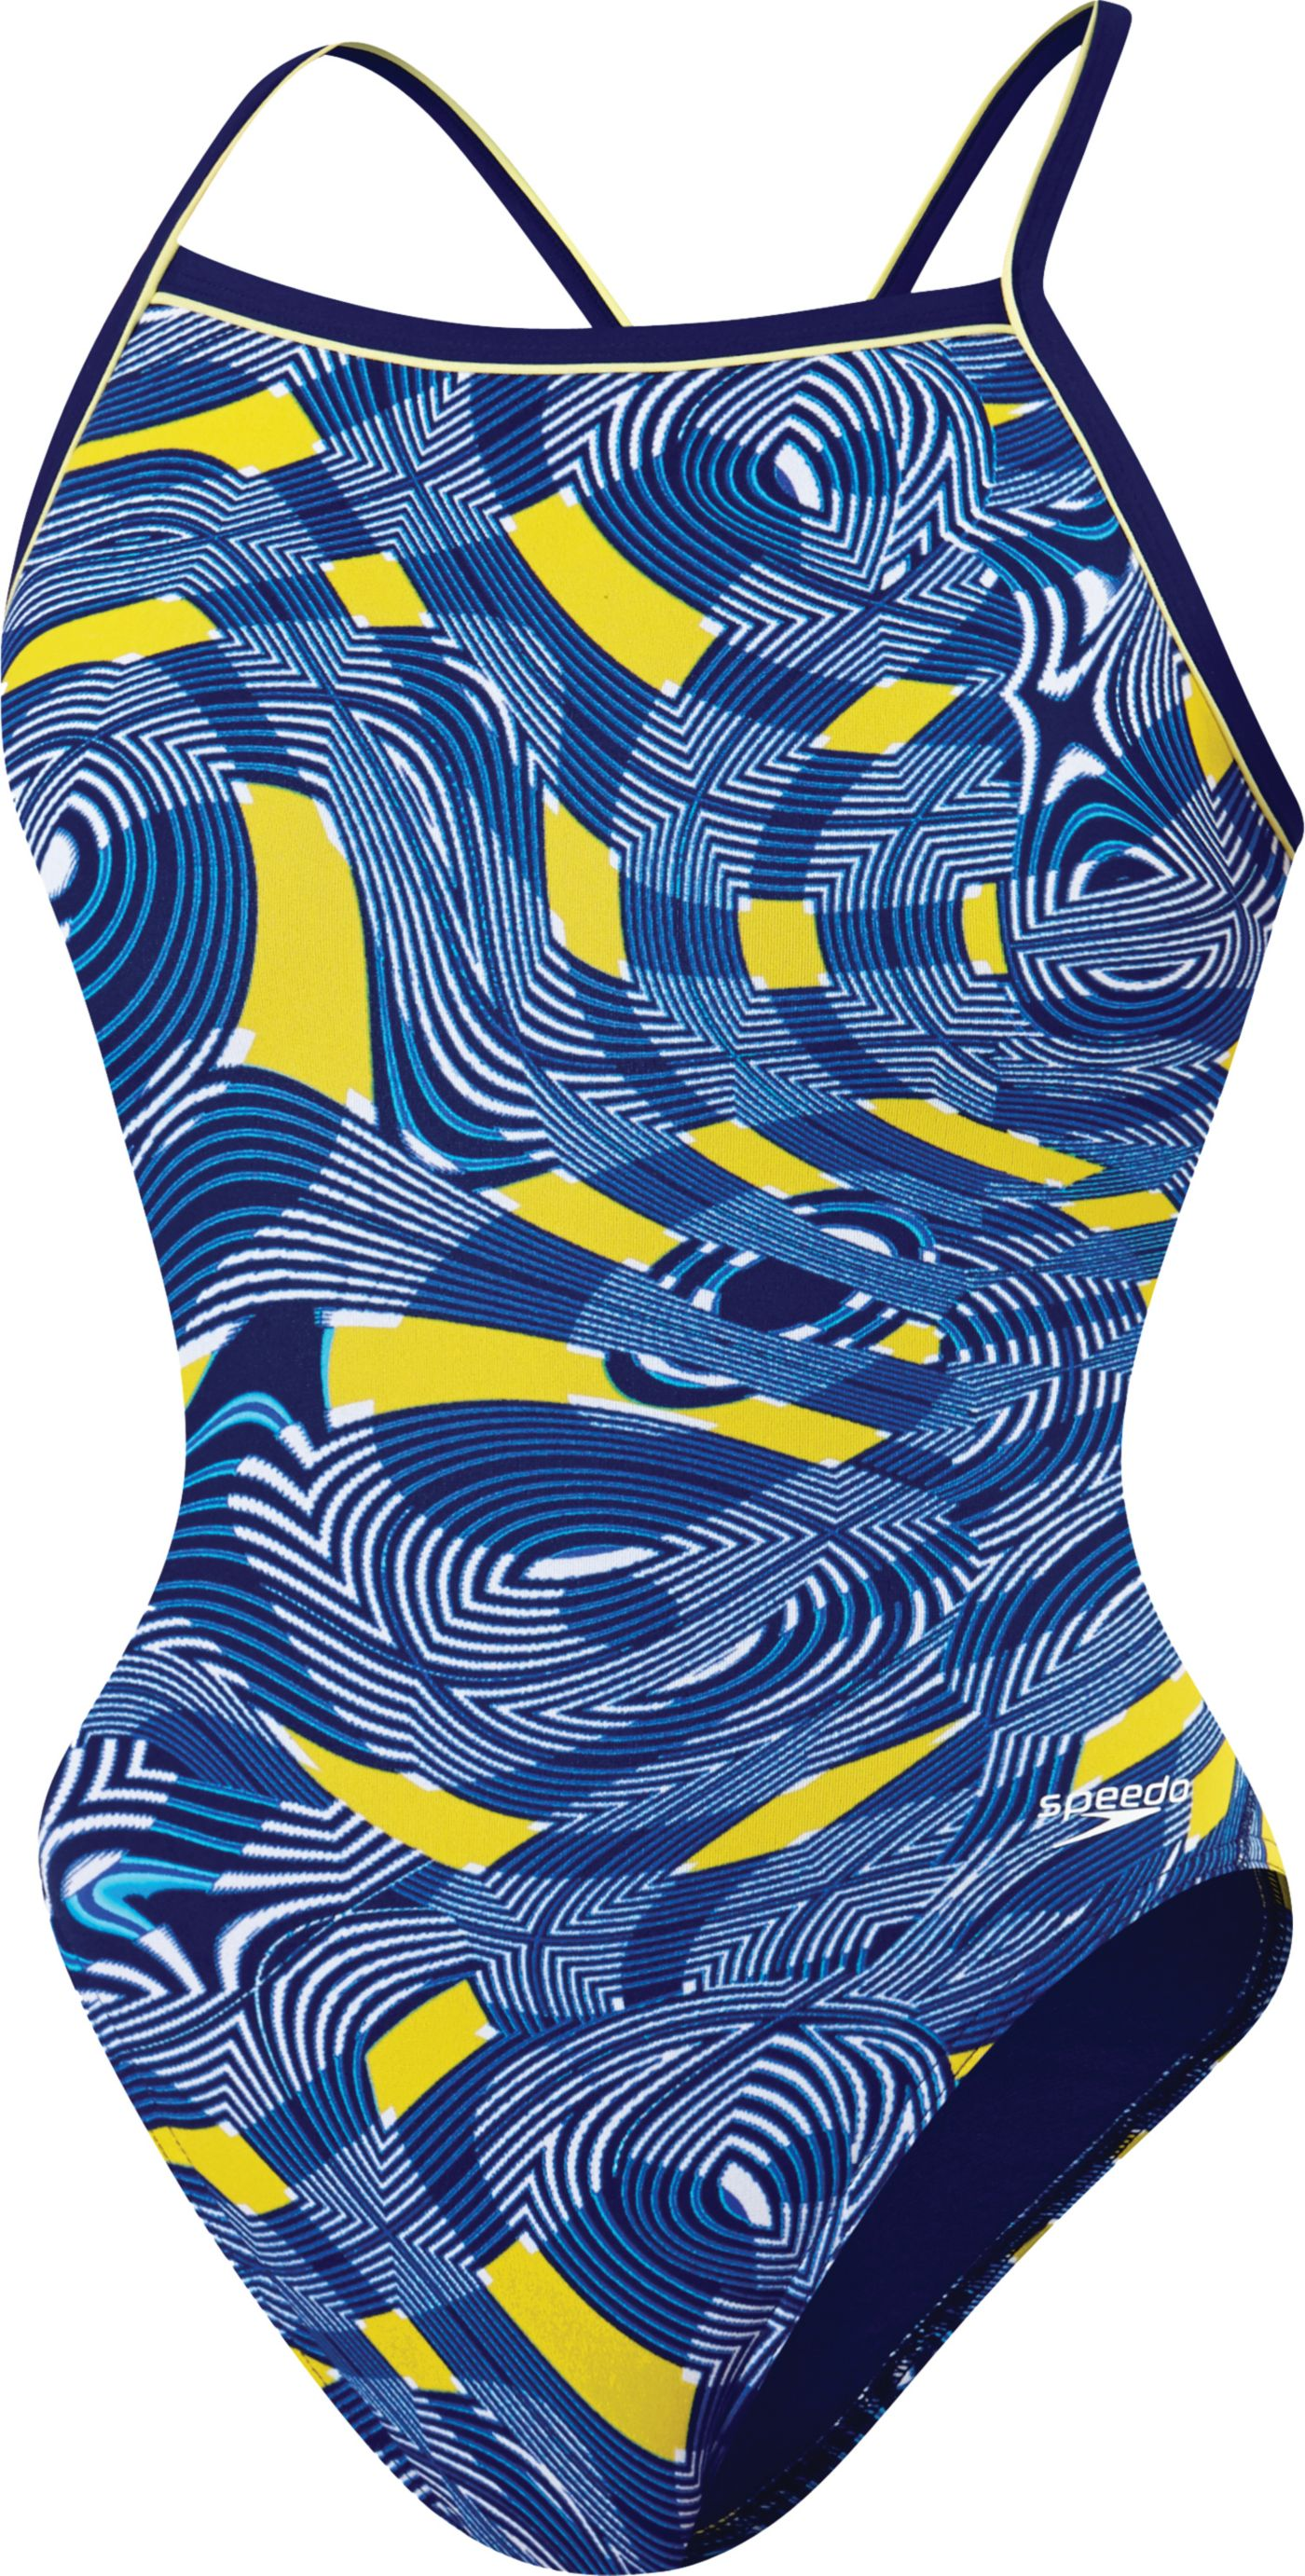 Speedo Girls' Scoubidou Flyback Swimsuit